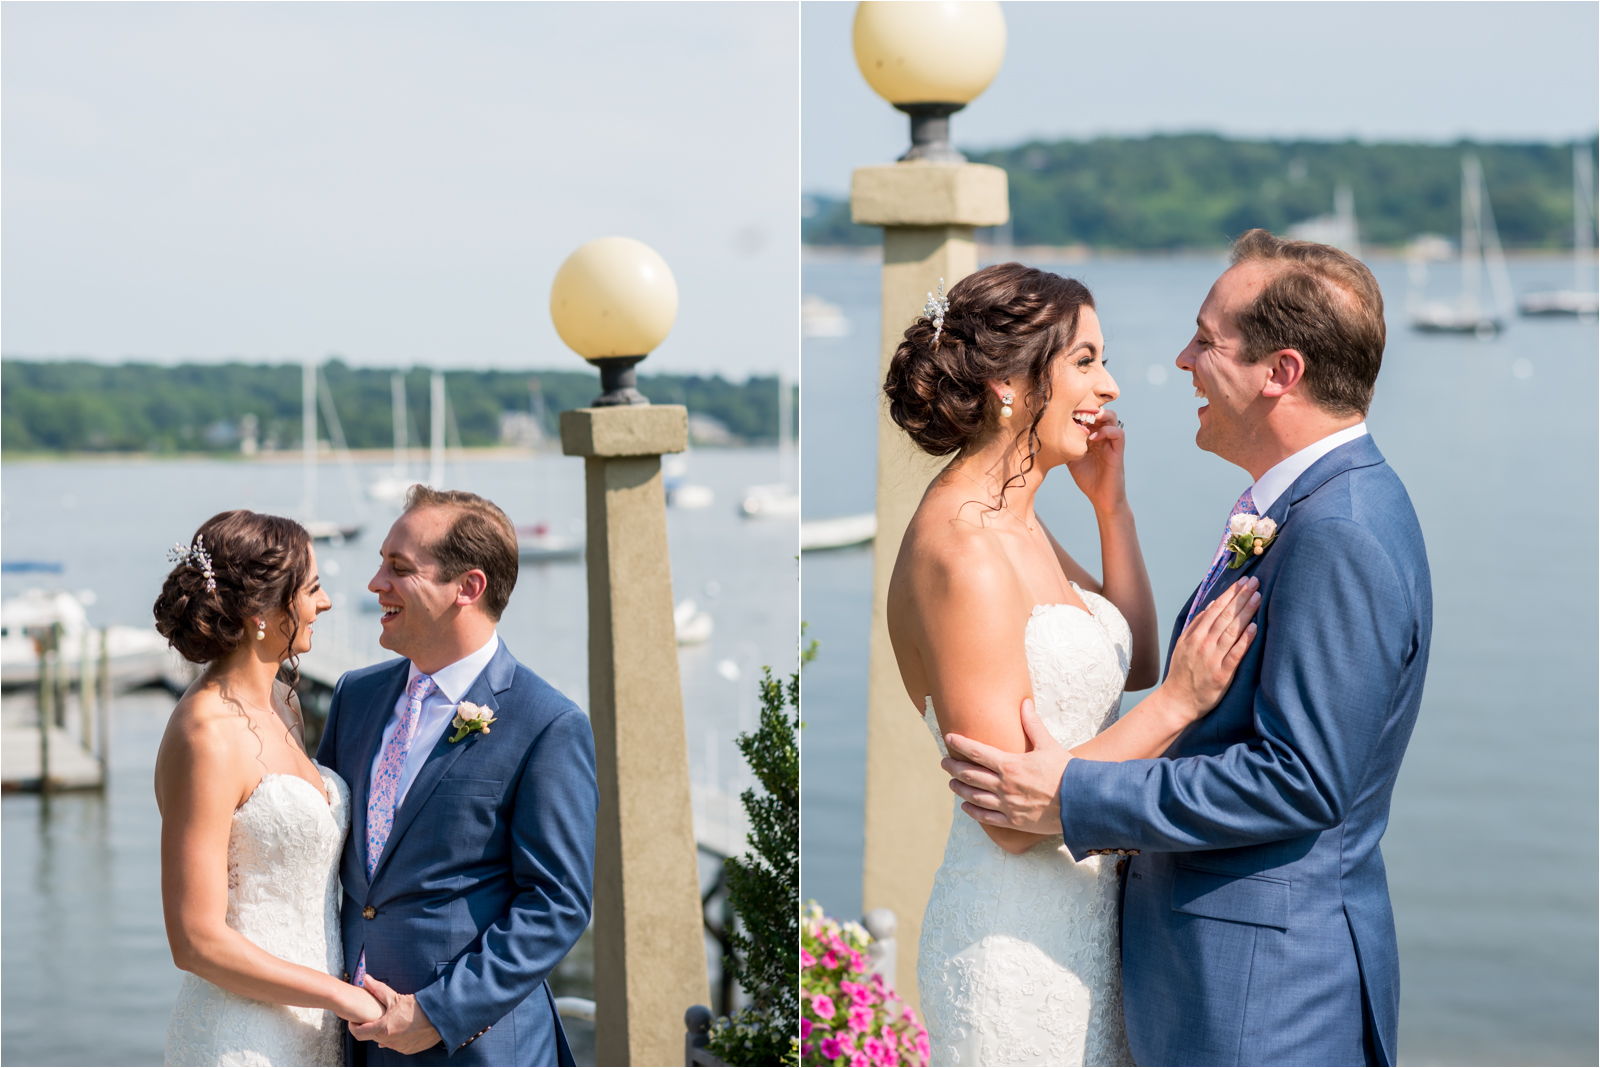 wedding-photography-gresalfi-nejbauer-oyster-bay-long-island-new-york-seawanhaka-yacht-club-wedding-yachtclubwedding-yacht club wedding-bride-and-groom-focus-on-joy-photography-jessica-capozzola-richmond-virginia-rva